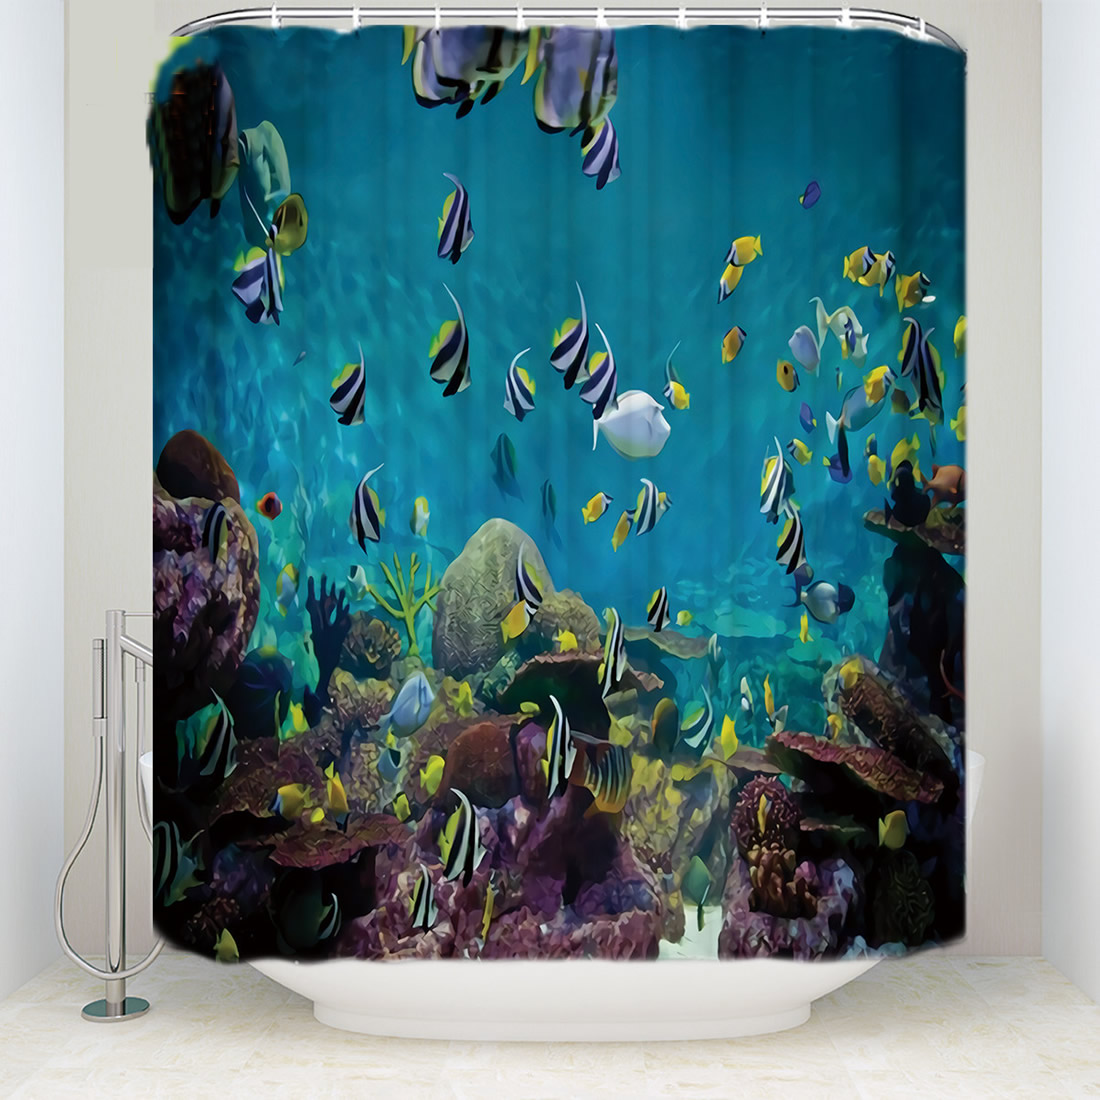 Beautiful Underwater World Fish Polyester Shower Curtains Washable High Quality Colorful Curtains for Bathroom Shower Home Decor in Shower Curtains from Home Garden